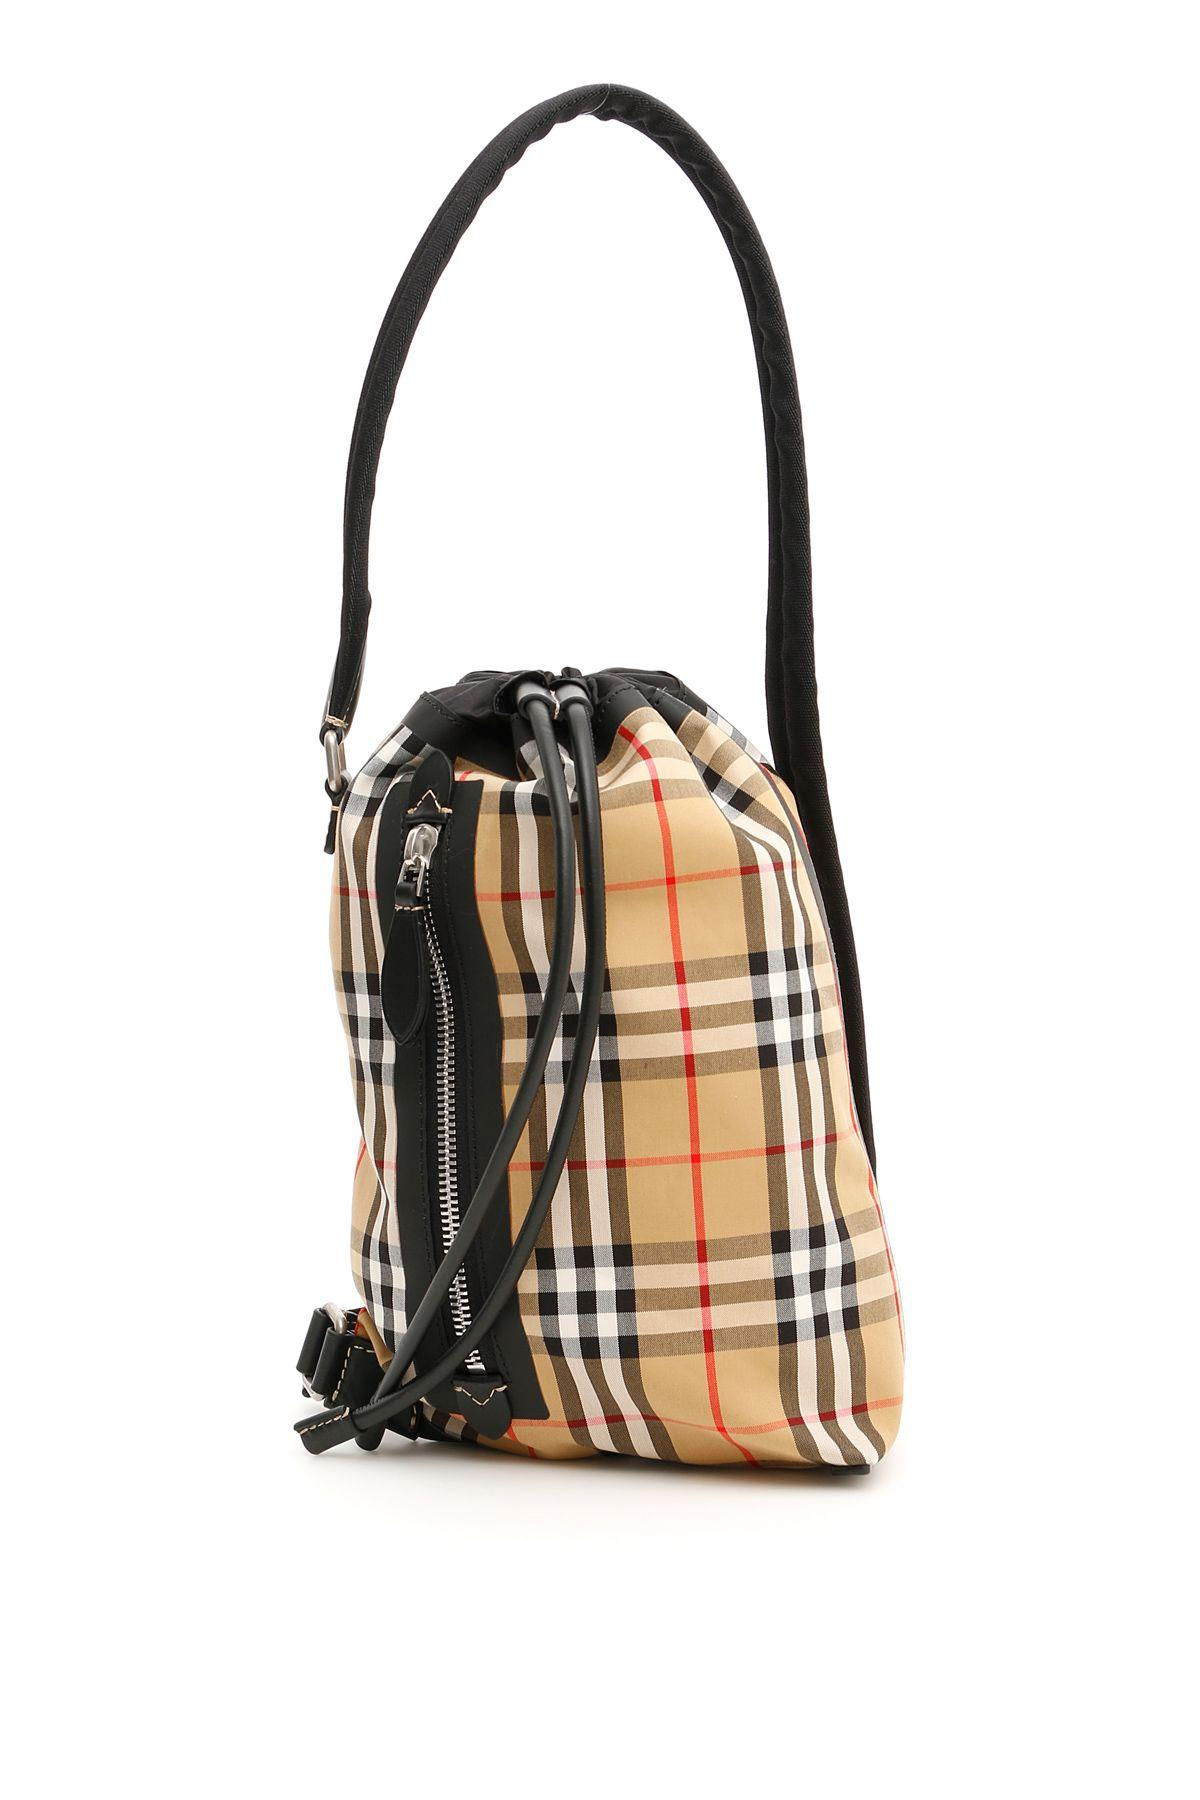 2d76531edfdd Burberry Small Vintage Check Sailing Duffle Sling Bag In Yellow ...